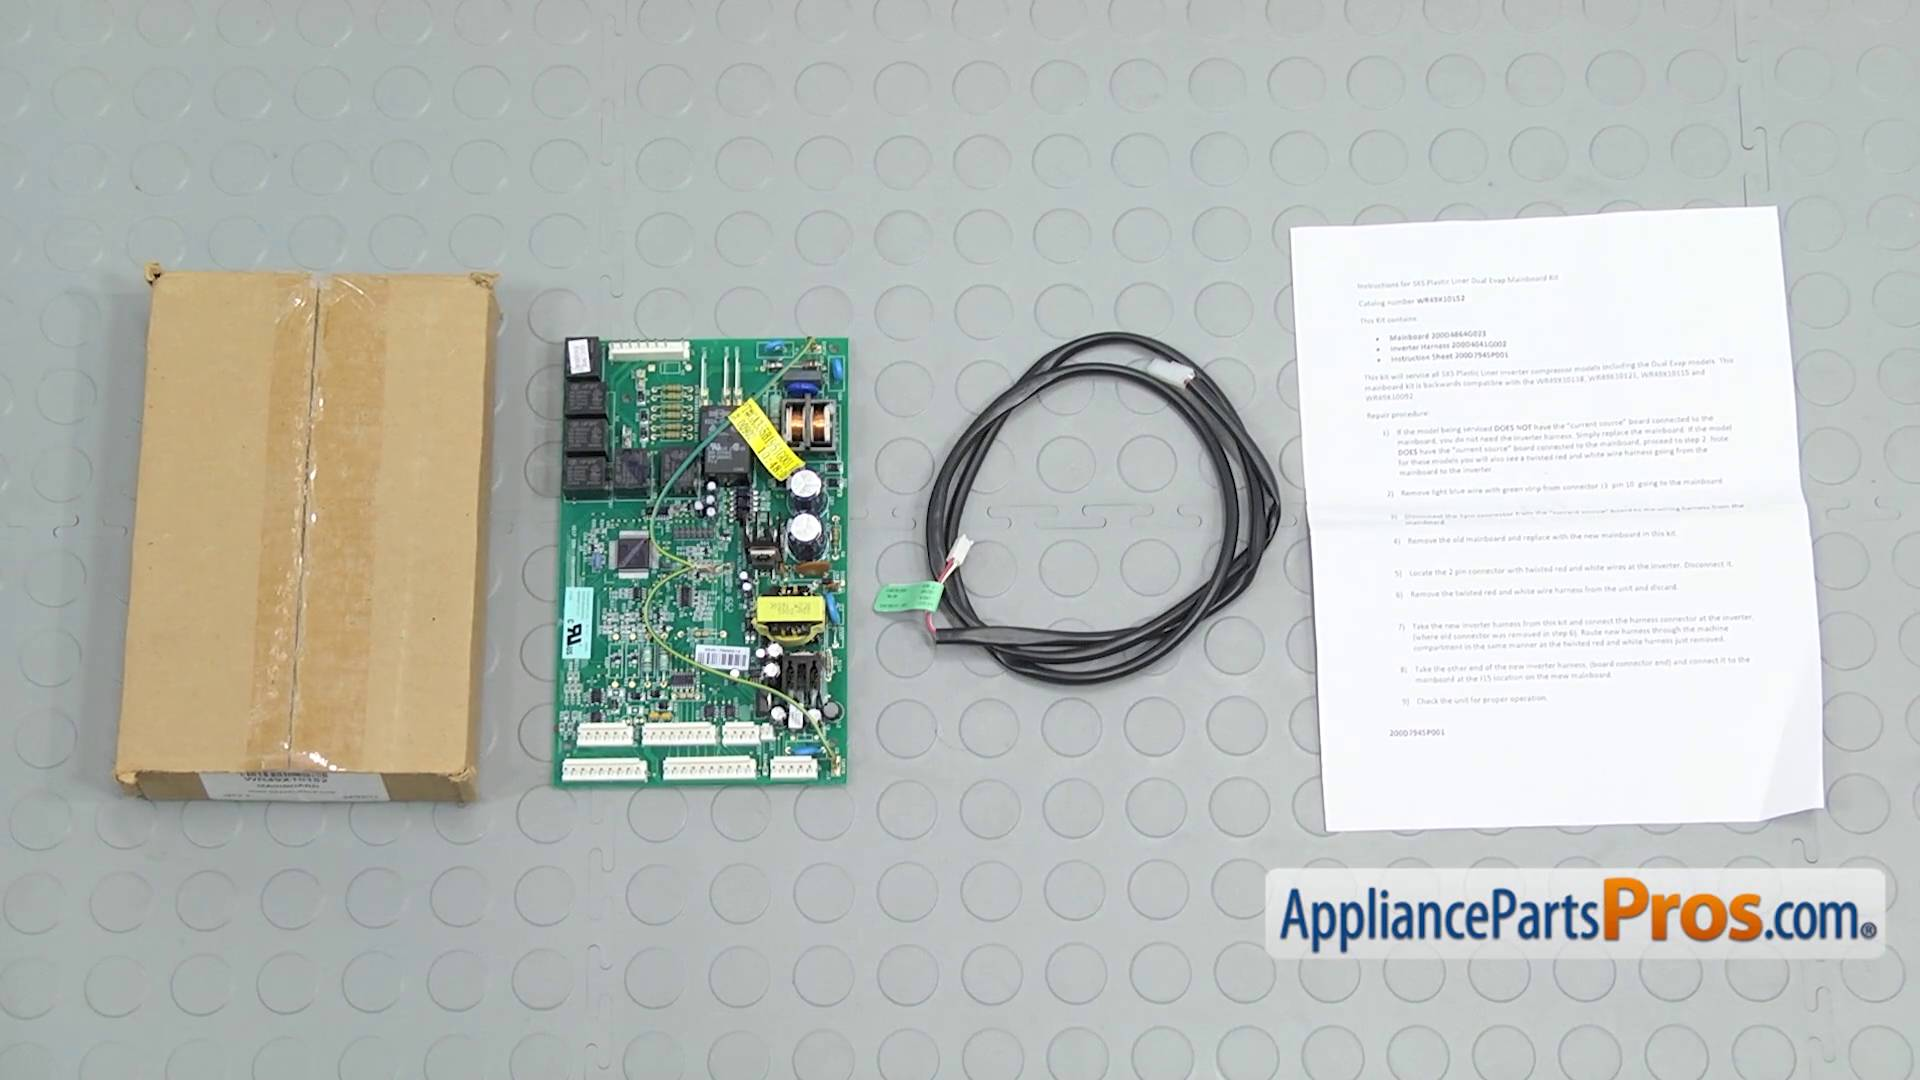 GE WR49X10152 Main Control Board - AppliancePartsPros.com